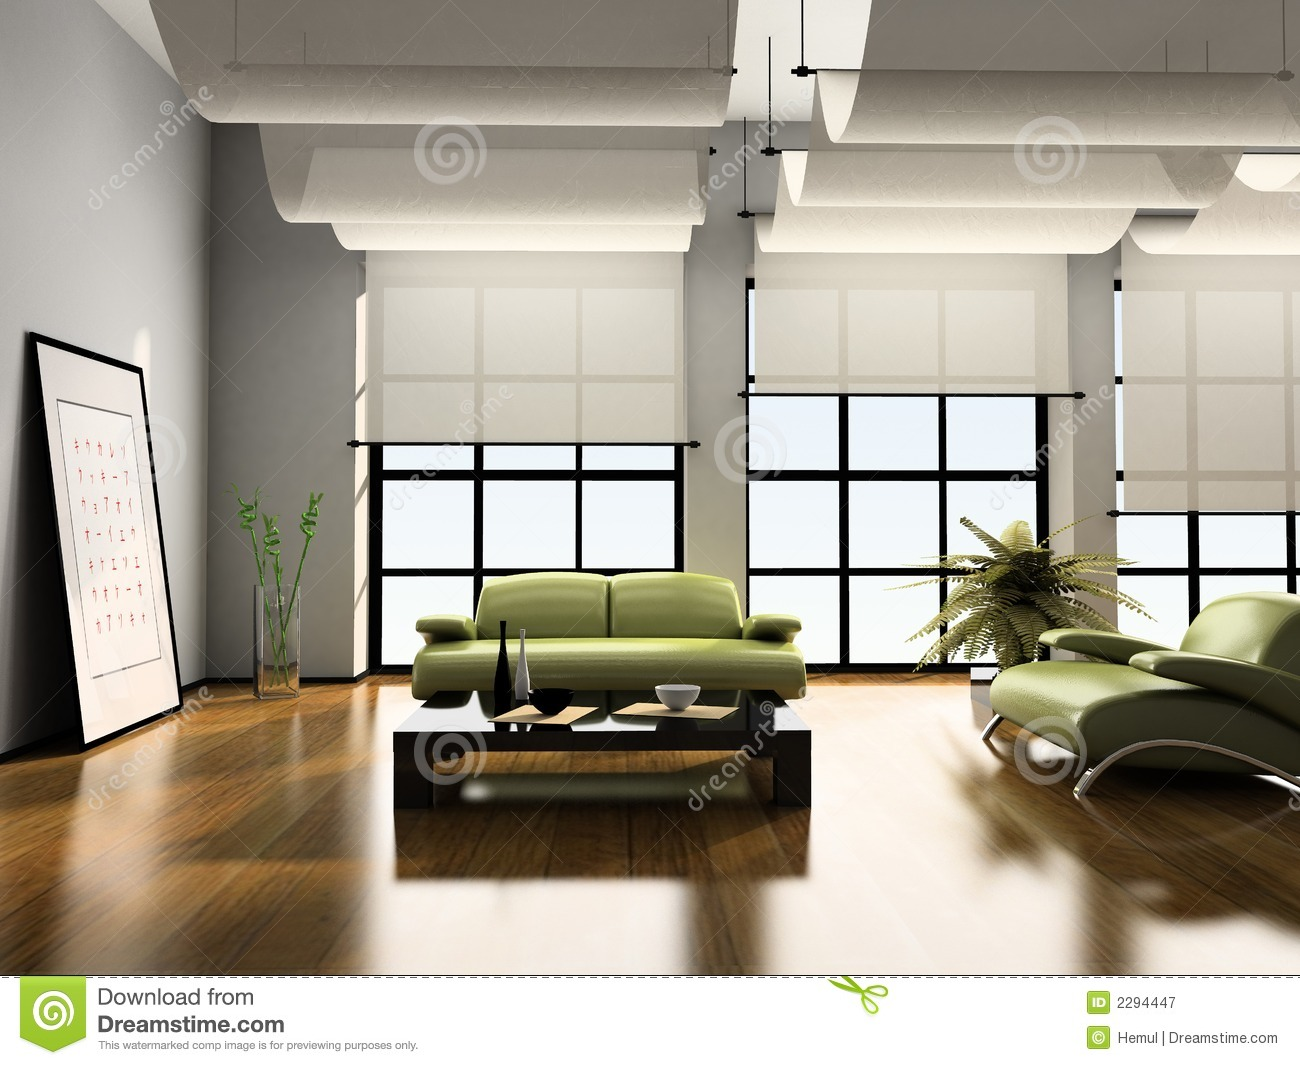 Home interior 3d stock image image of picture illumination 2294447 Free interior design